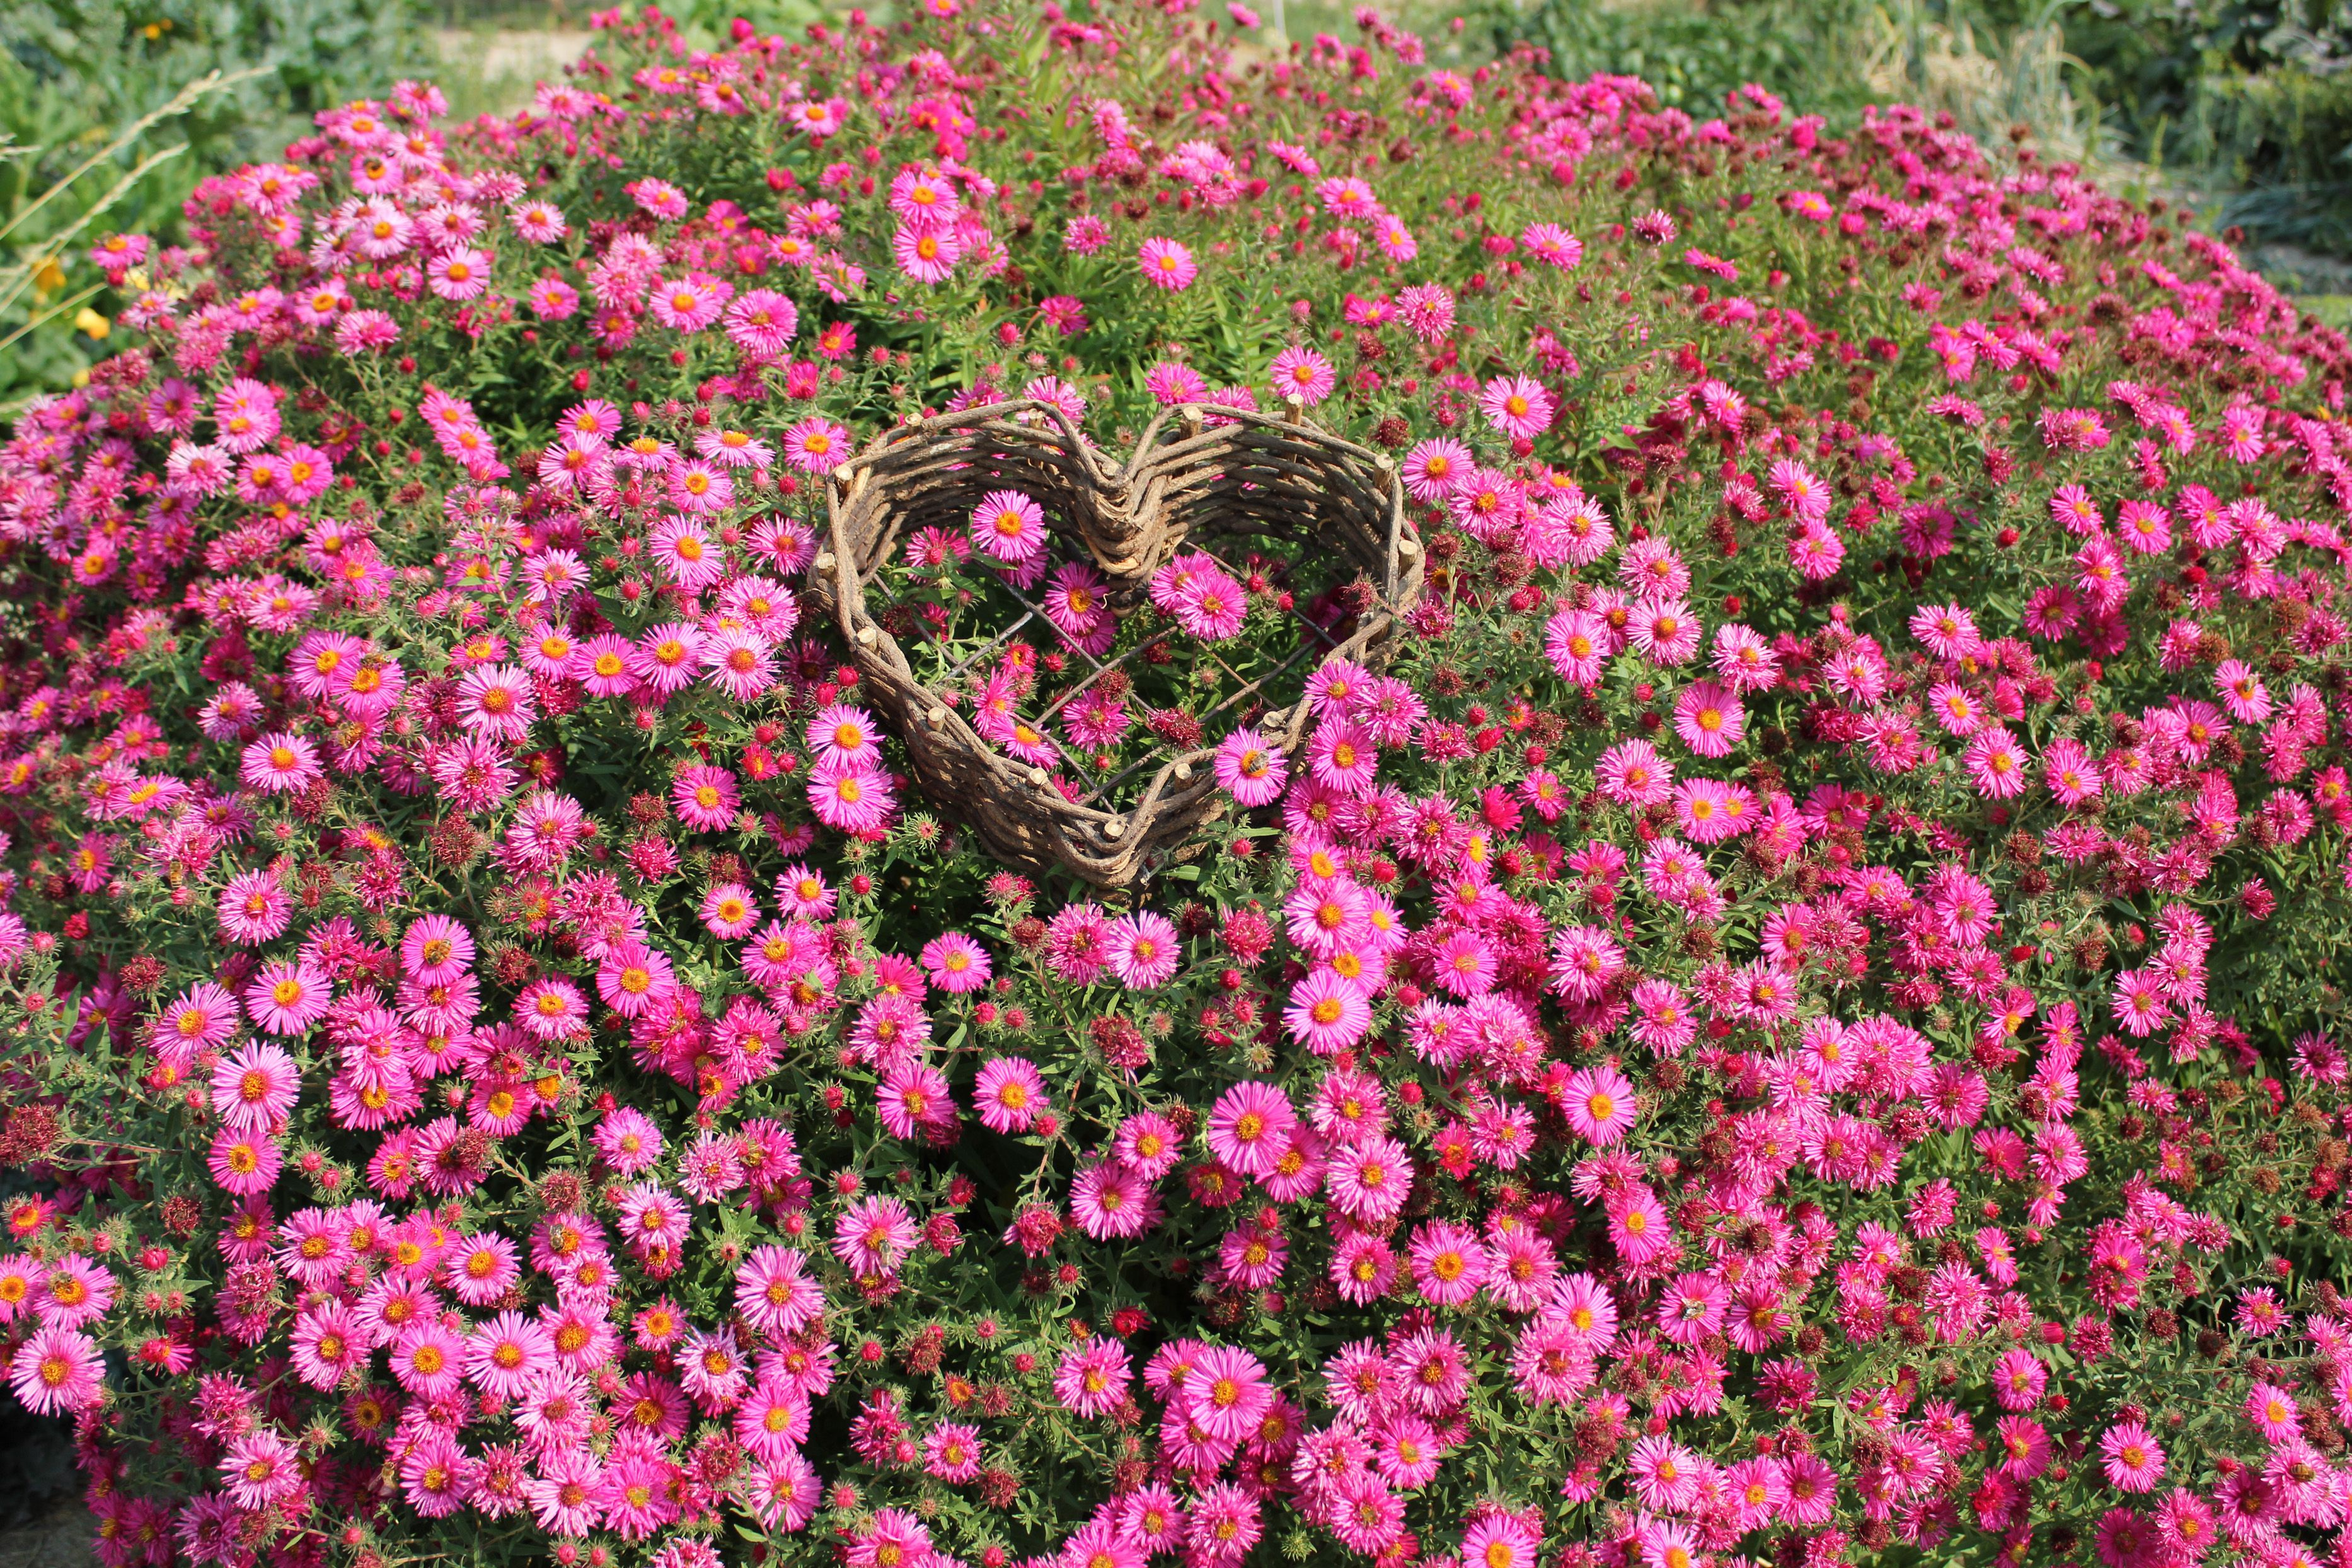 September Ruby Aster Hardy Perennial Vibrant Deep Pink Flowers With Yellow Centers 4 Tall Easy To Grow Even In Poor Soils